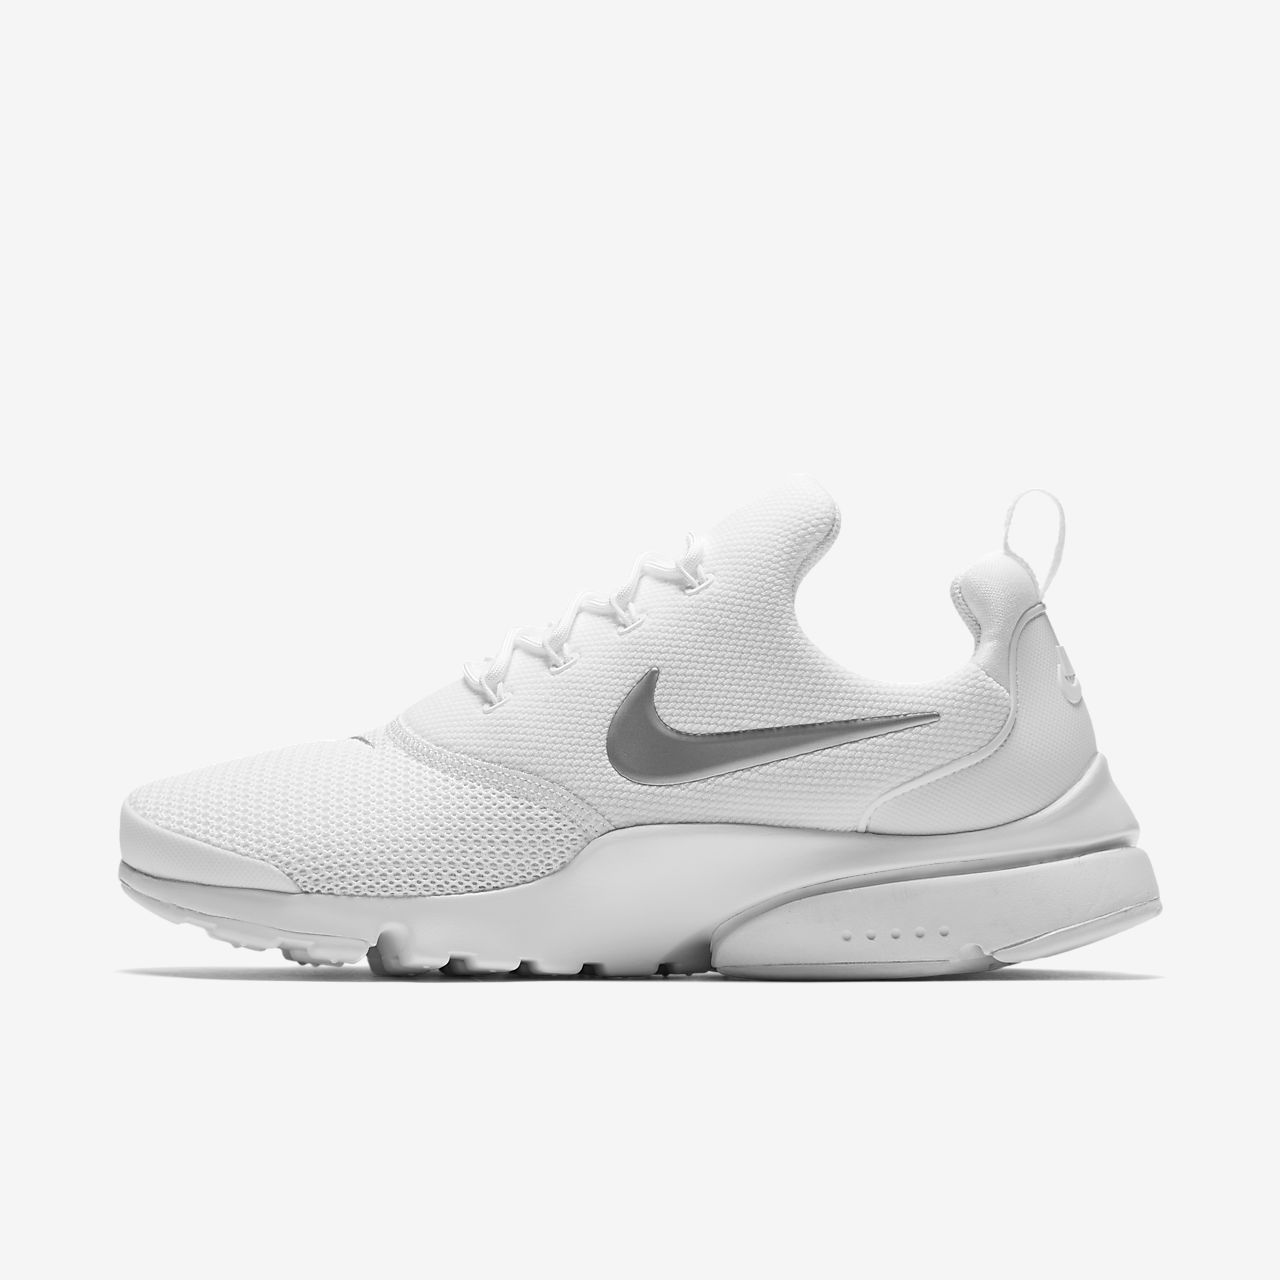 official store buying cheap latest nike presto fly enfant fille